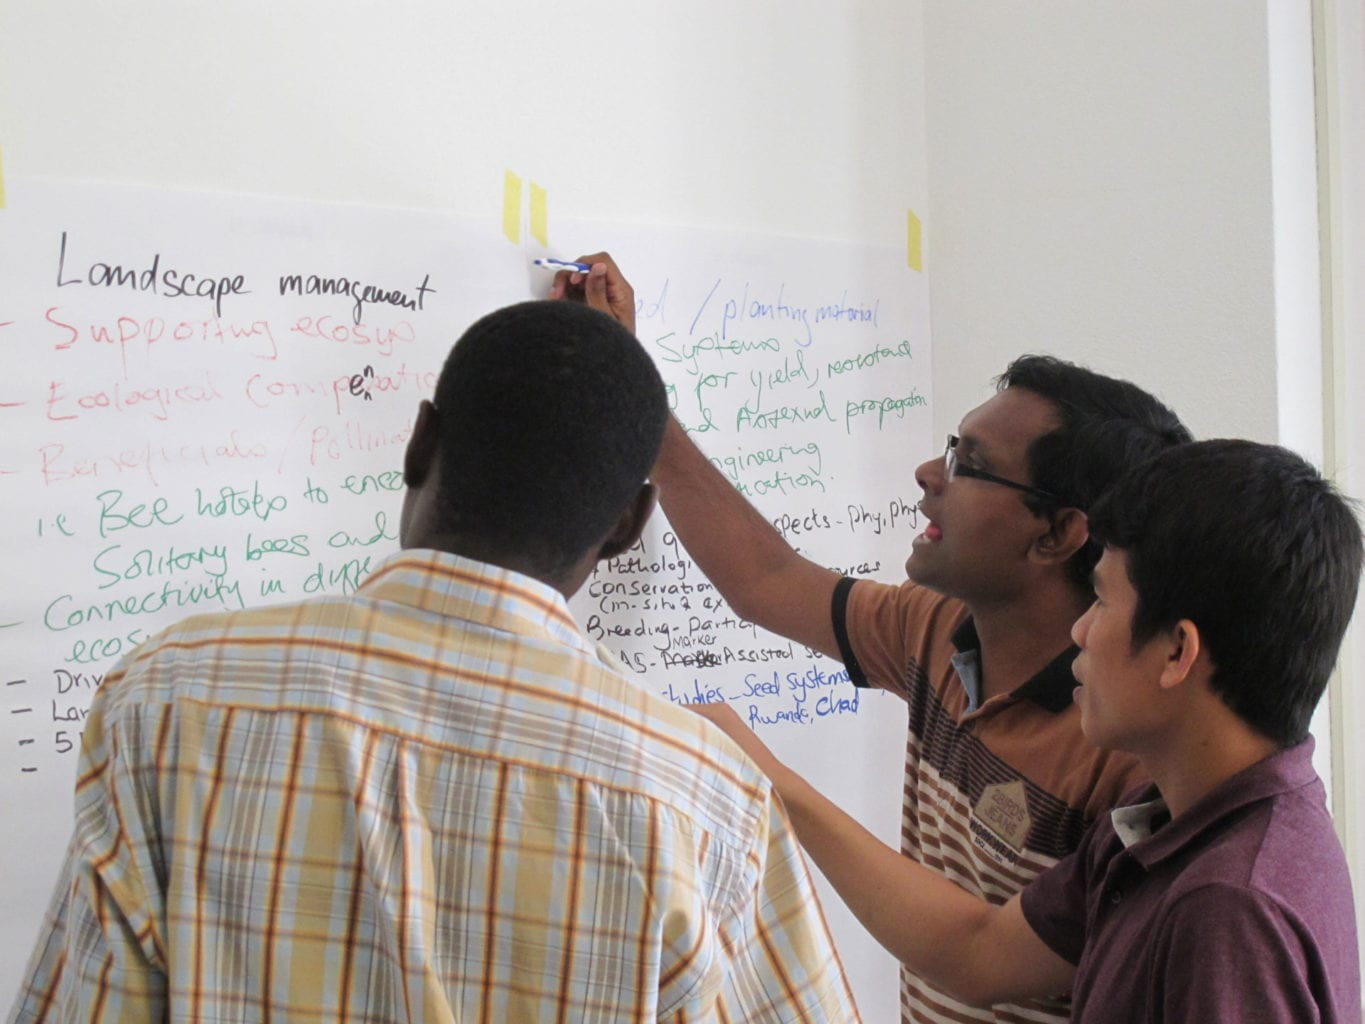 Partners across the world planning a campaign